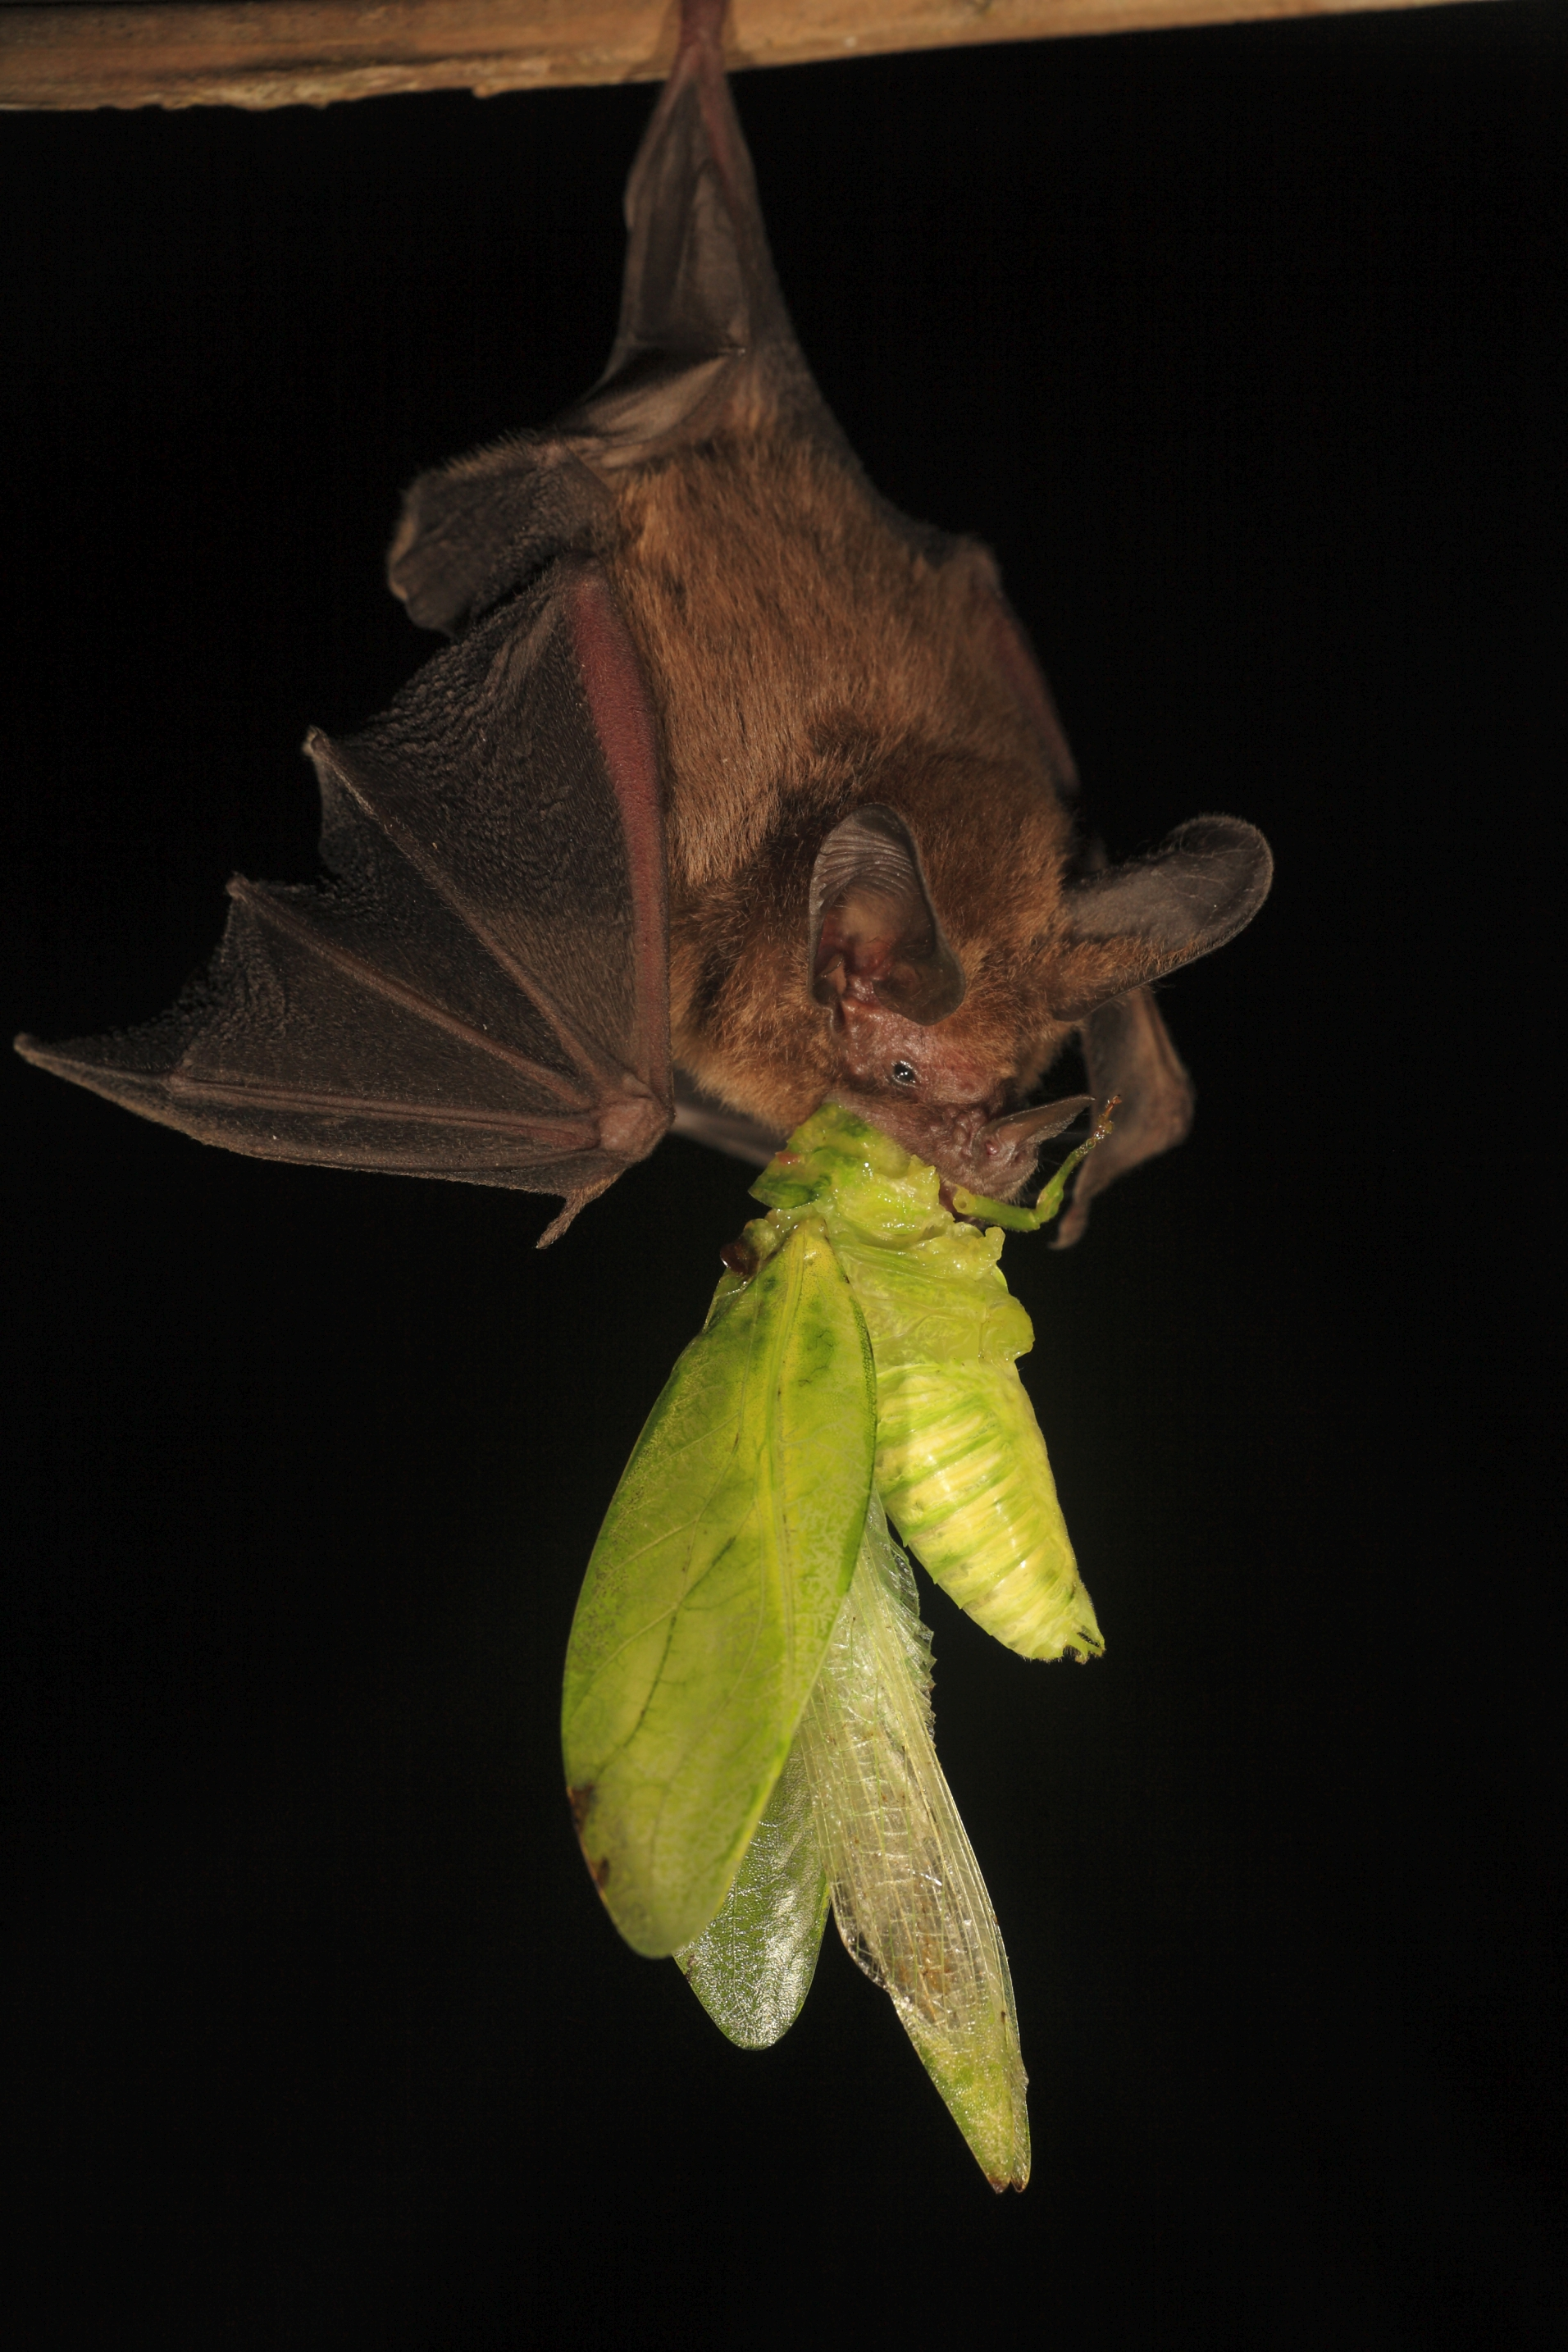 Bat with giant katydid in its mouth